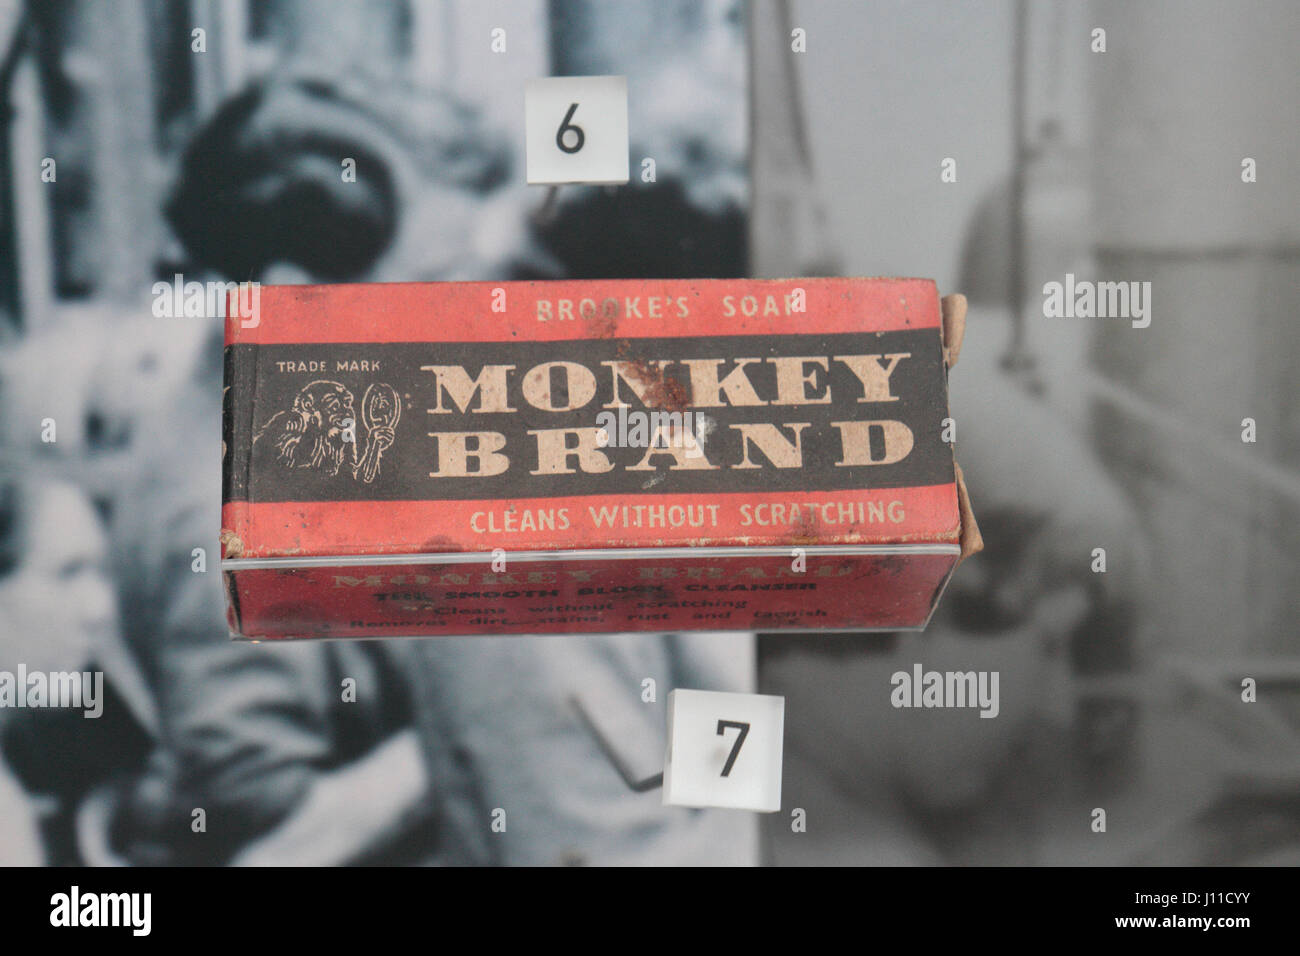 'Monkey Brand' Brooke's Soap ('Cleans Without Scratching') from about 1900 on display in the - Stock Image